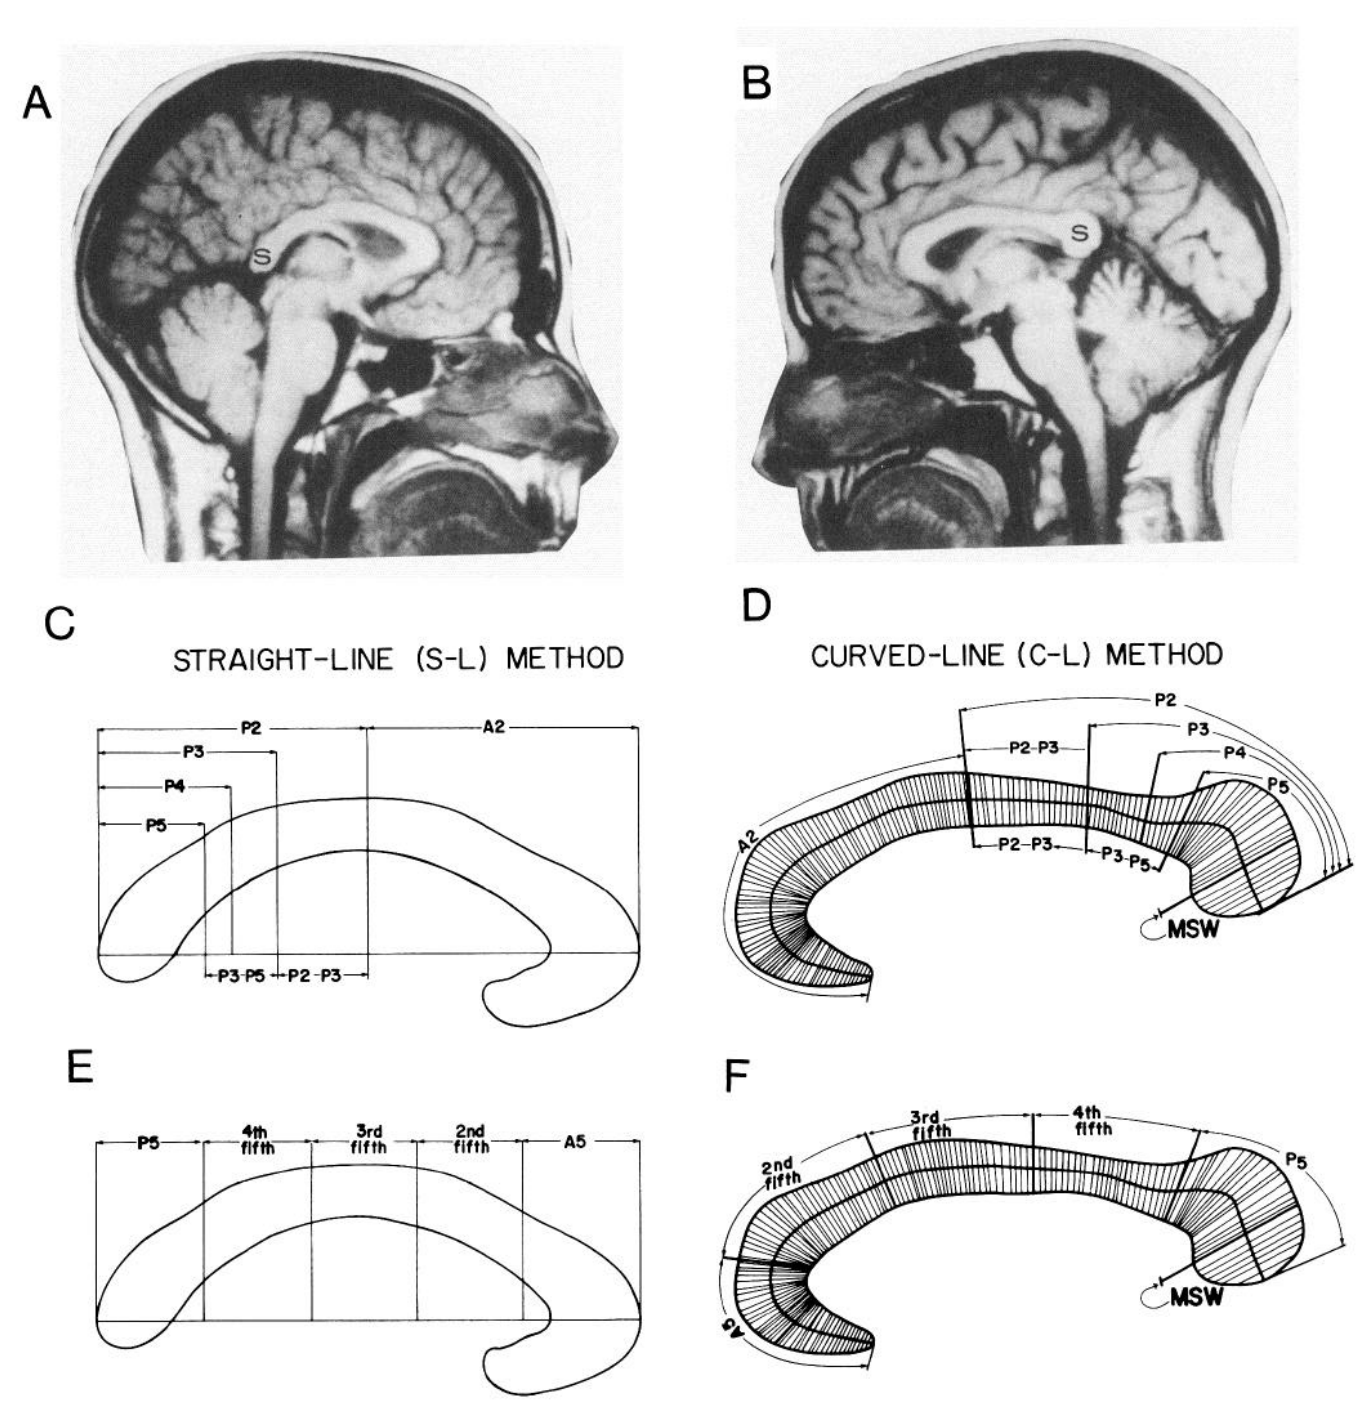 """Figure 1 from Allen et al. (1991), Sex Differences in the Human Corpus Callosum , showing a representative MRI scan of a male brain (A) and a female brain (B) as well as schematics of how they measured the sizes of different parts of the corpus callosum (C-F). Although they found a difference in the """"bulbosity"""" of the splenium (S) between males and females,observers were unable to correctly categorize images on their own at a rate higher than would occur by chance."""